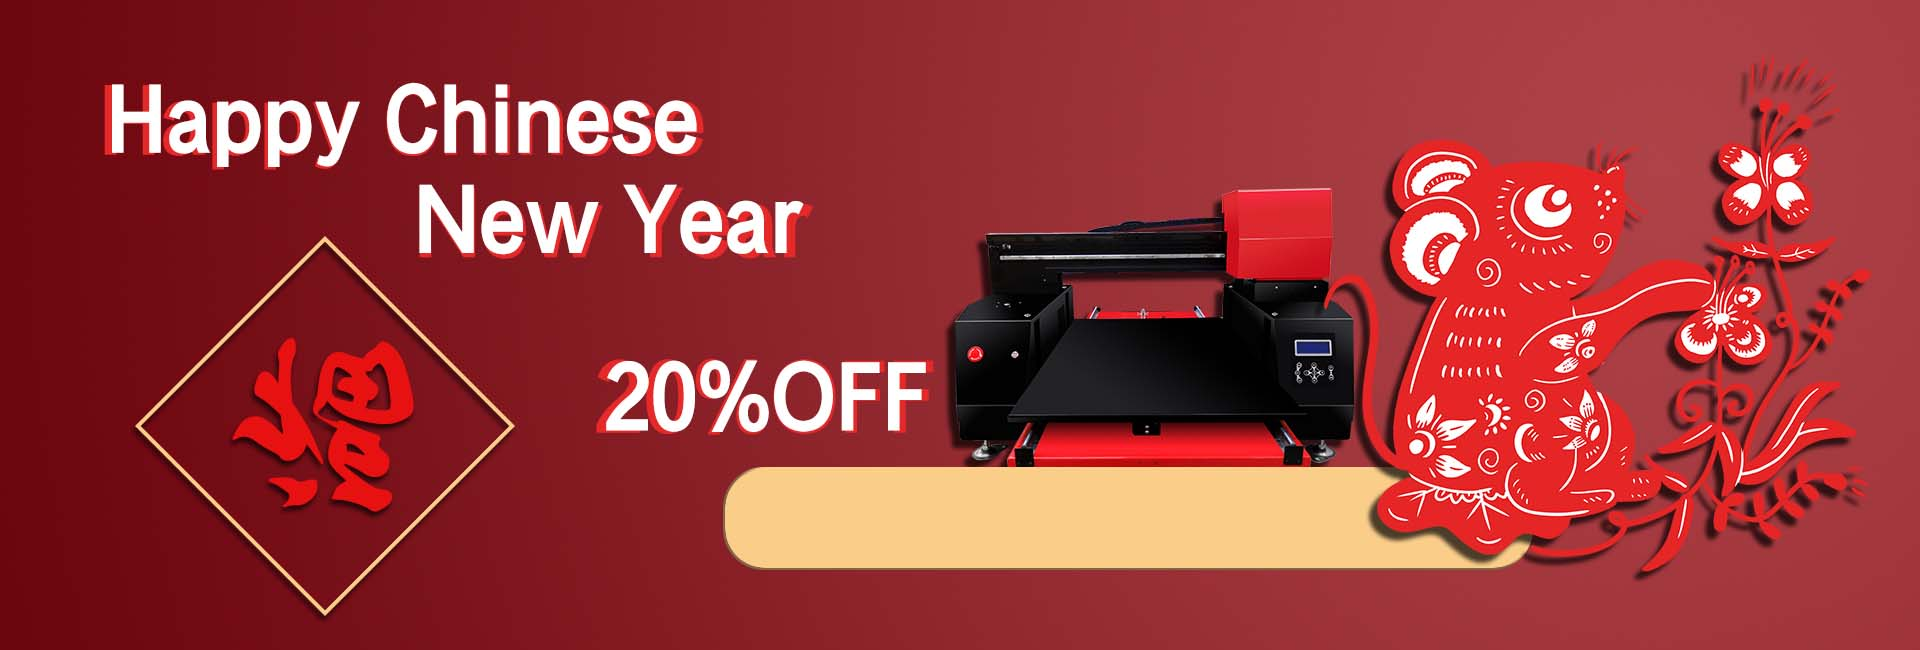 2020 antprint new year promotion